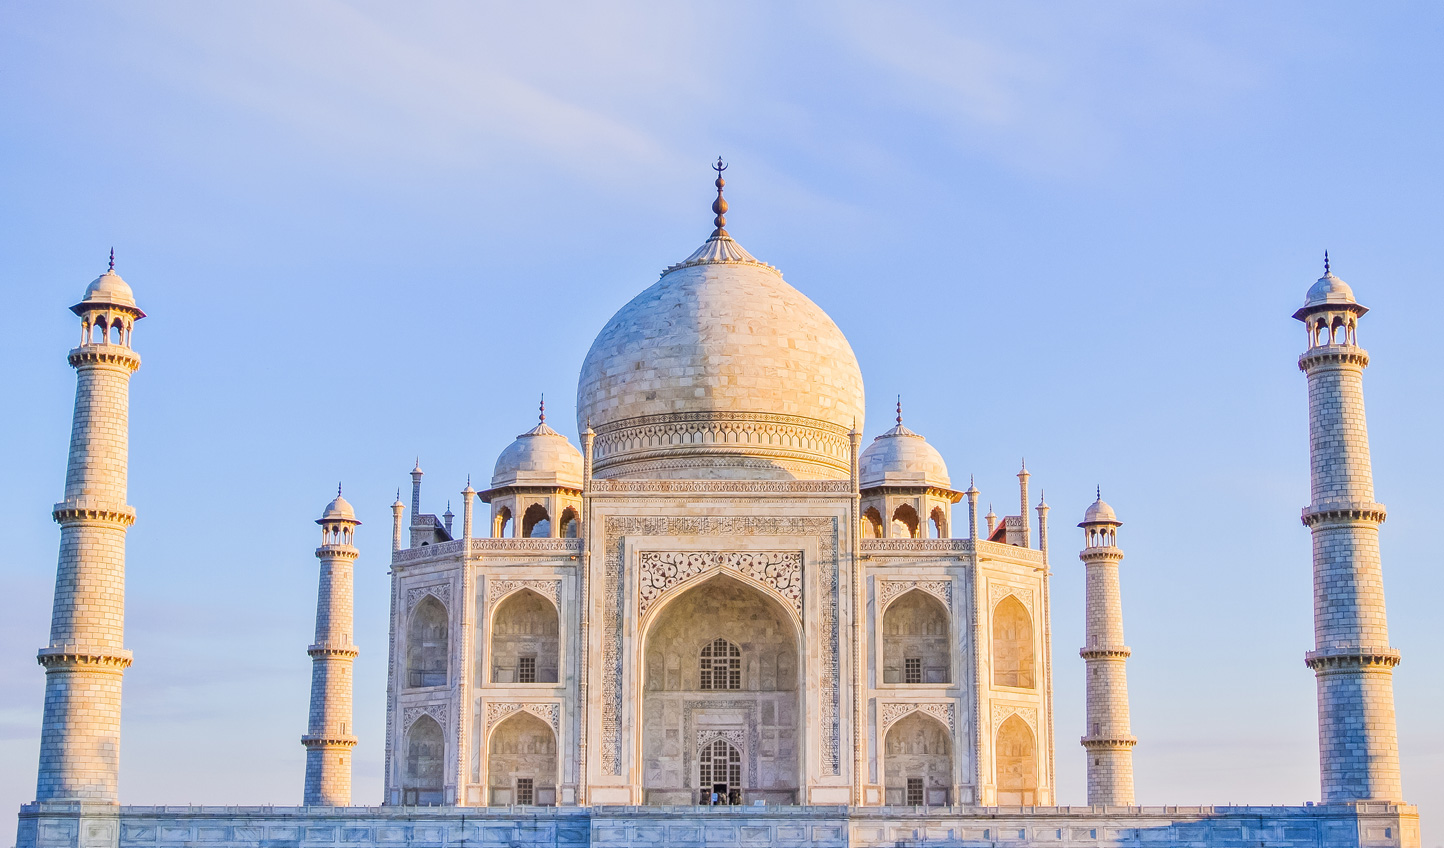 Get ahead of the crowds and behold the beauty of the Taj Mahal at sunrise